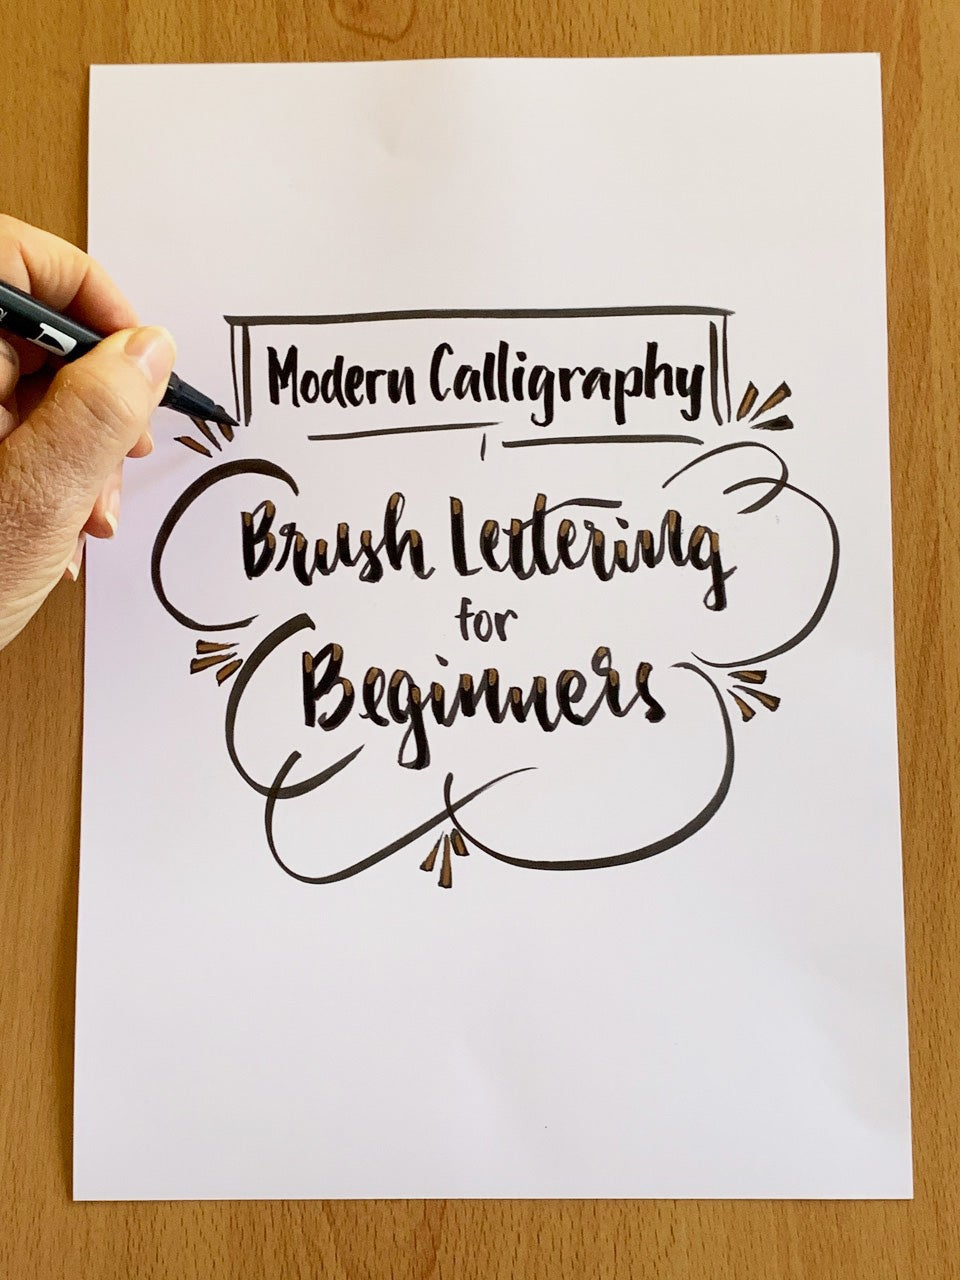 Image of Modern Calligraphy: Brush lettering with Gayle McGovern